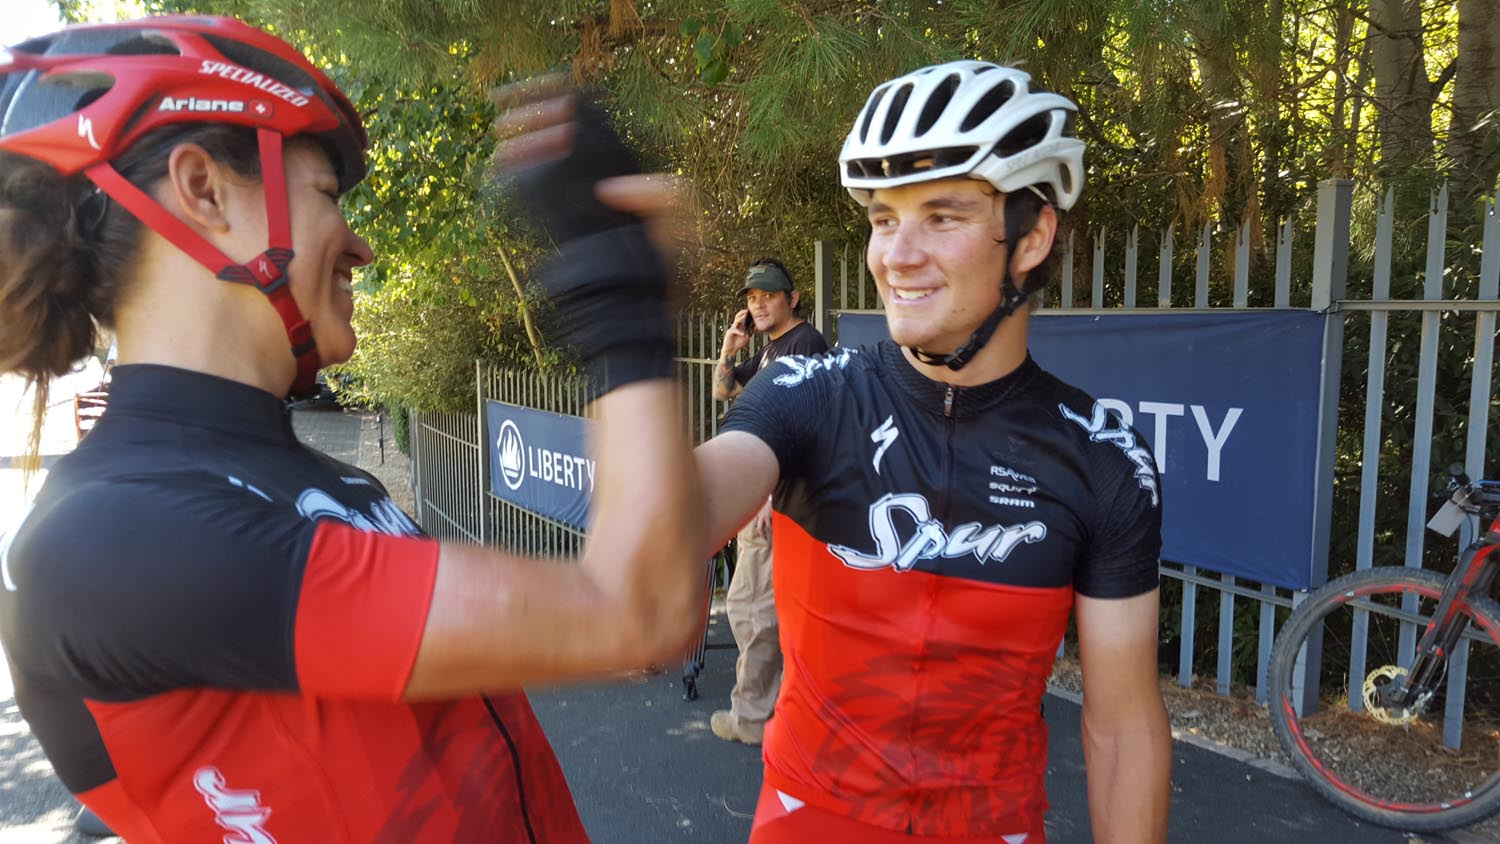 Team Spur's Ariane Kleinhans (left) and Stephan Senekal congratulate each other after winning the mixed category on stage one of the Liberty Winelands MTB Encounter. Photo: Full Stop Communications